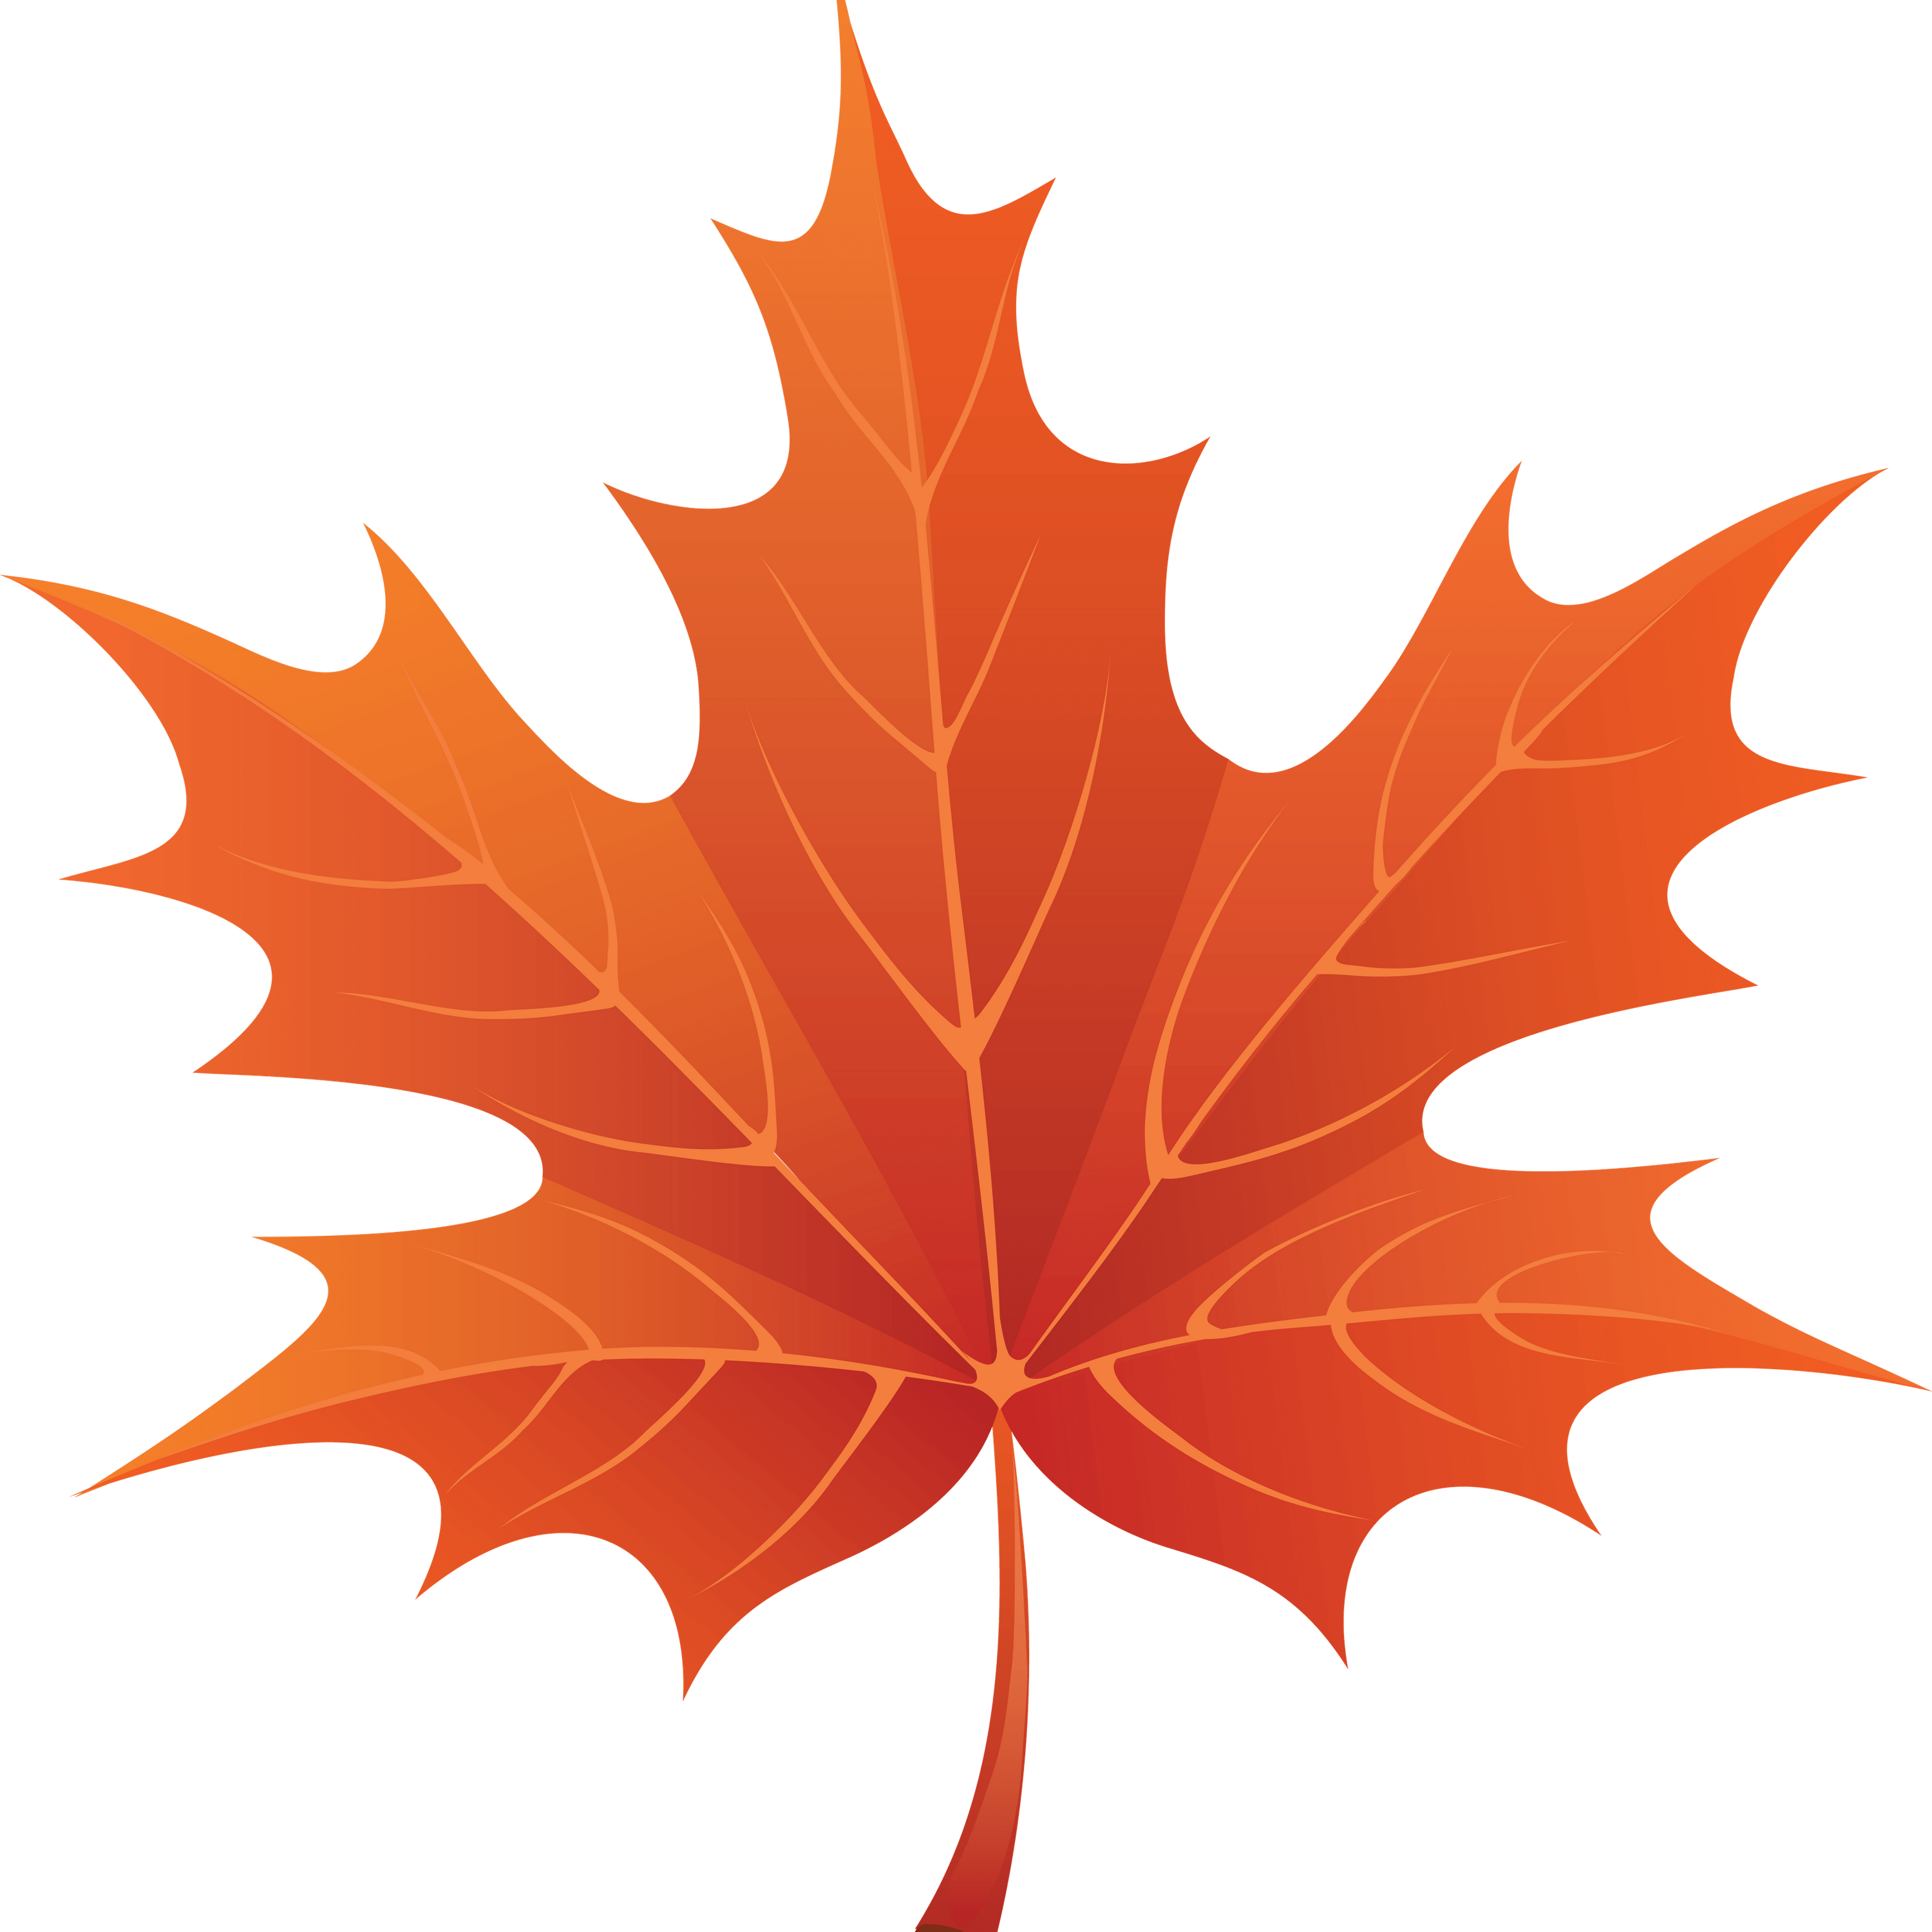 Yellow Maple Leaf Yellow Leaves Fall Leaves Png Autumn Leaves